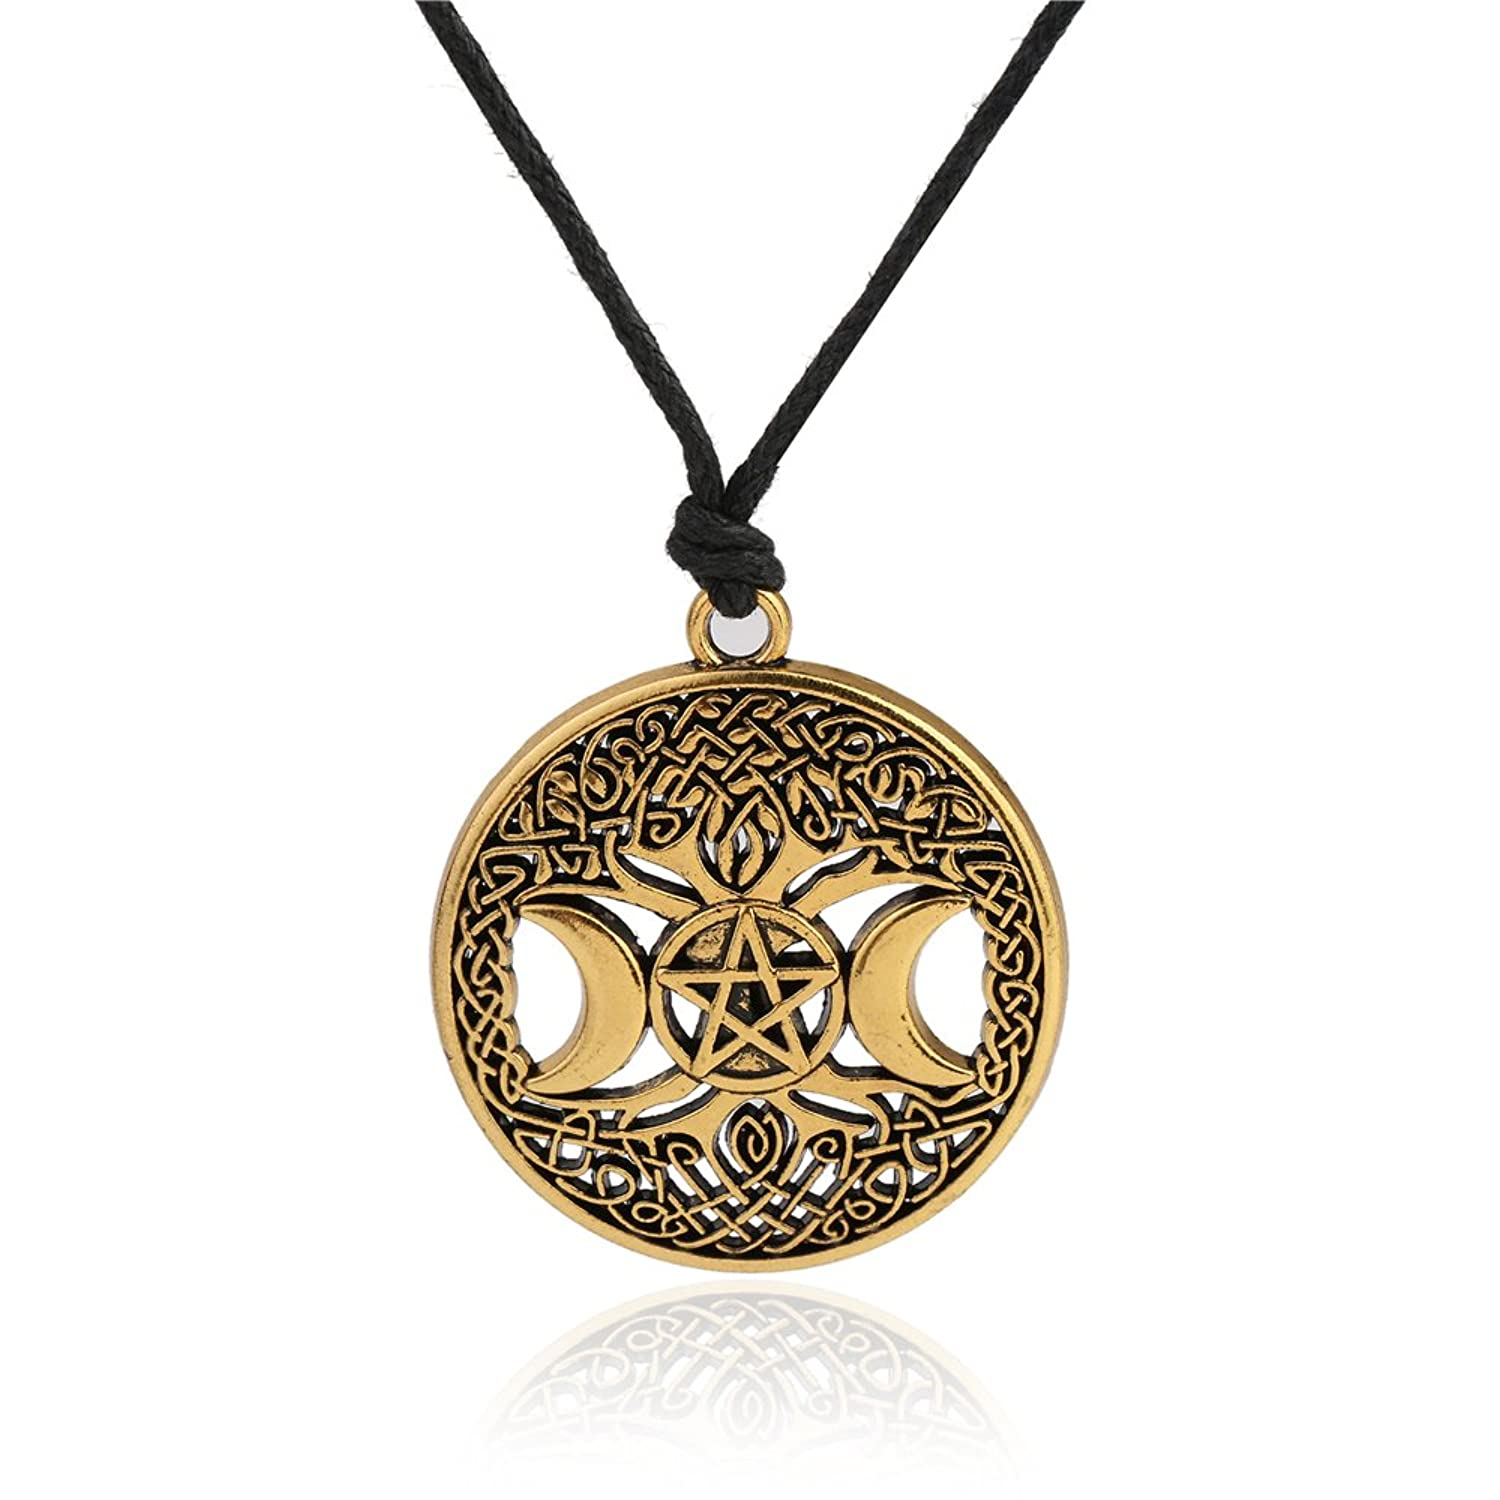 Wicca Vintage Tree of Life Triple Moon Godness Irish Knot Hollow Pendant Necklace Jewelry